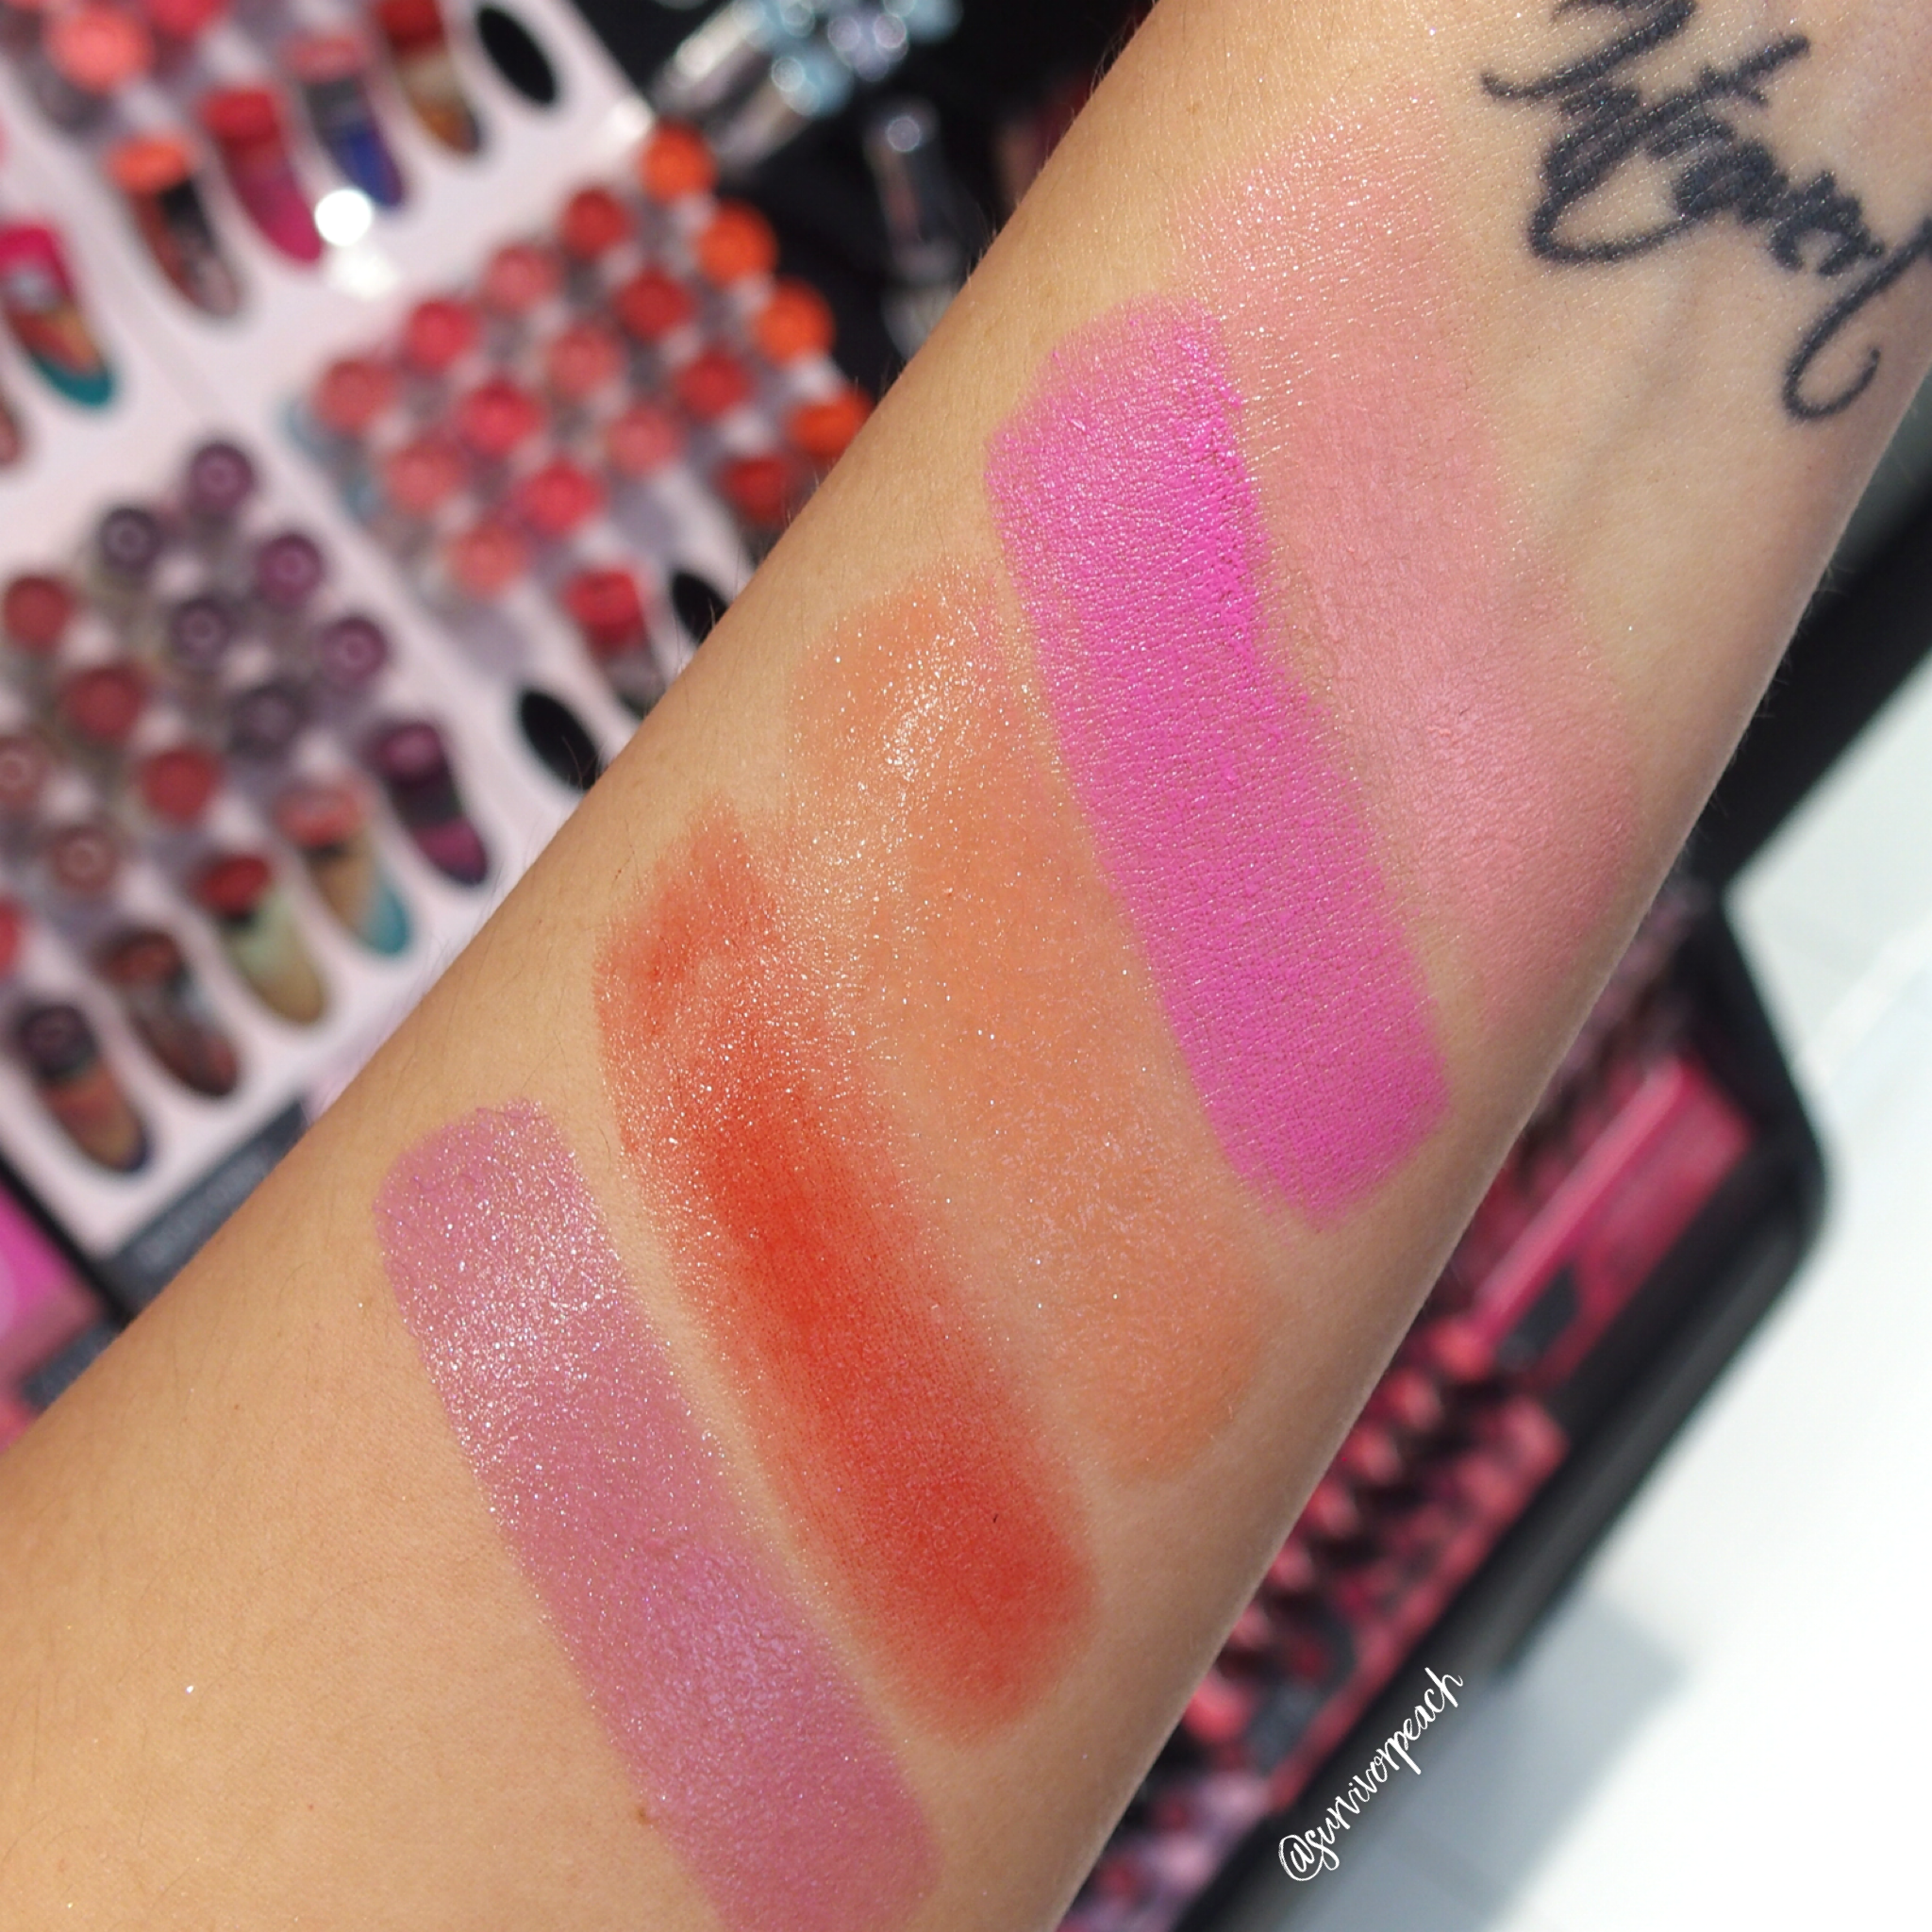 Swatches of the Sephora Collection Rouge Shine: N50, N56, N58, N62, N63